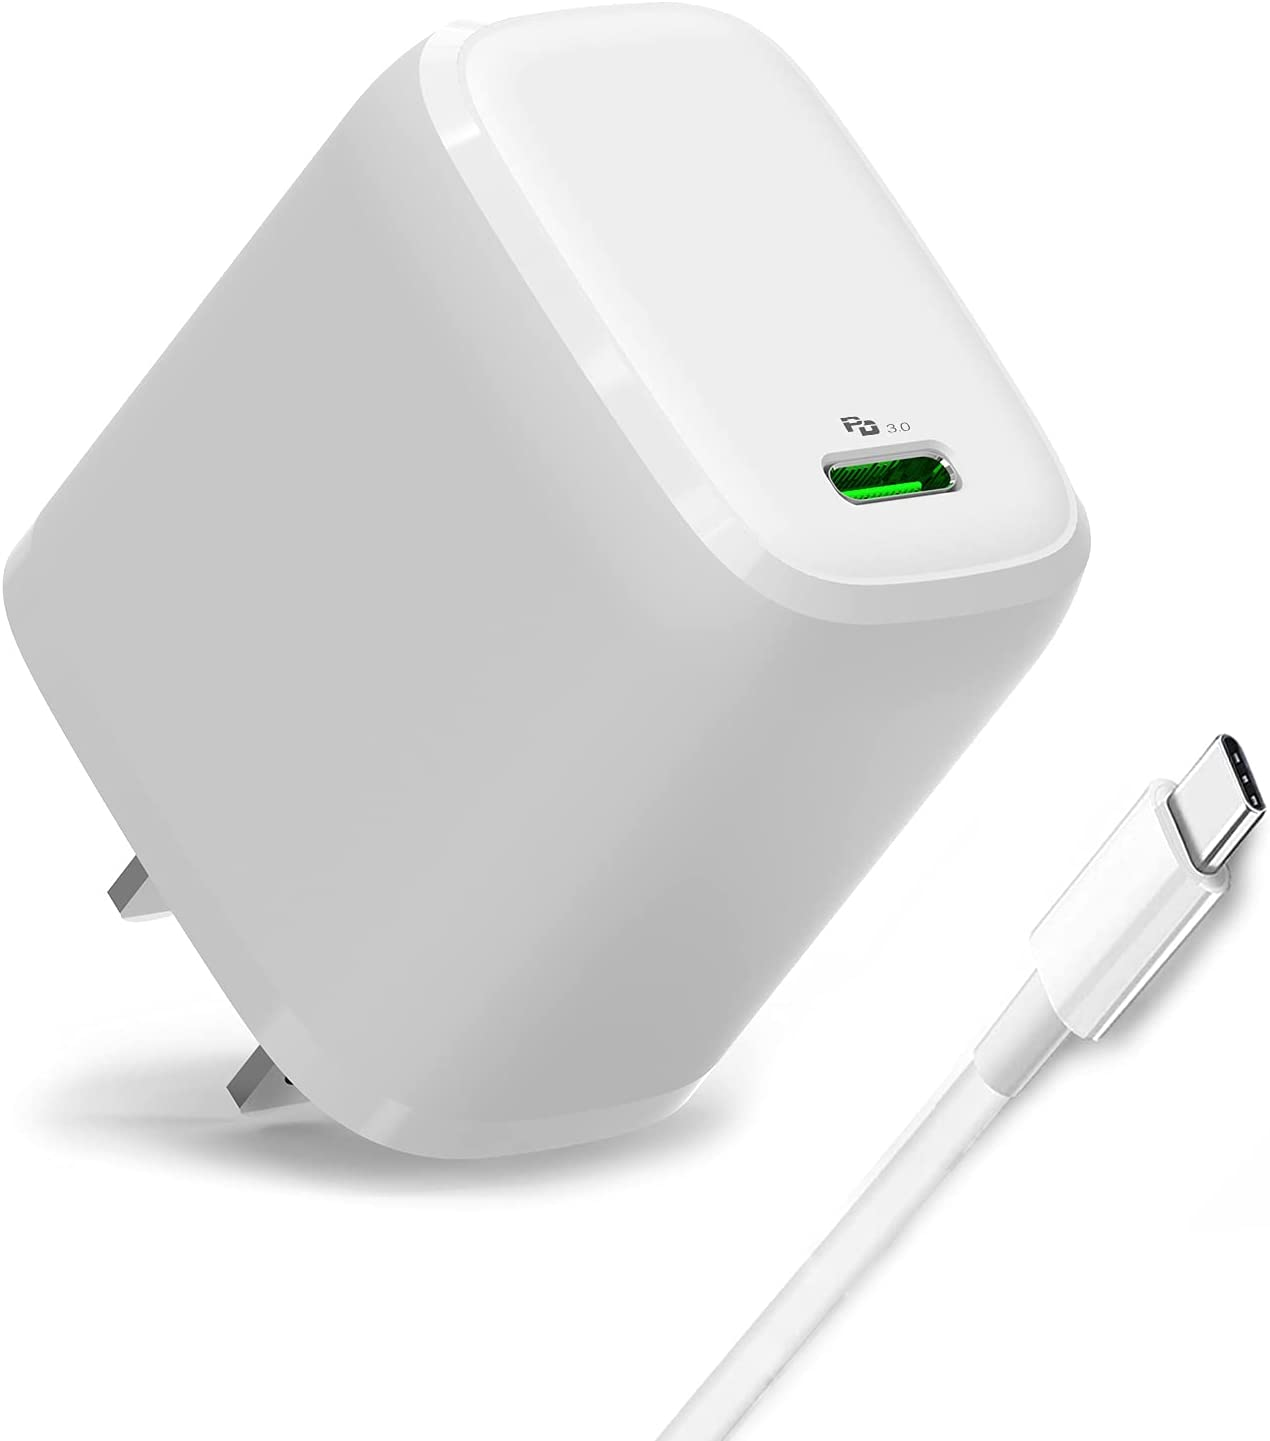 20W USB C Fast Wall Charger Compatible with iPhone 12/12 Pro/12 Pro Max/Mini/iPad Pro 12.9, Pro 11 inch 2020/2018, New Air 4, Google Pixel,6.6ft Type-C to Lightning Charging Cord Included